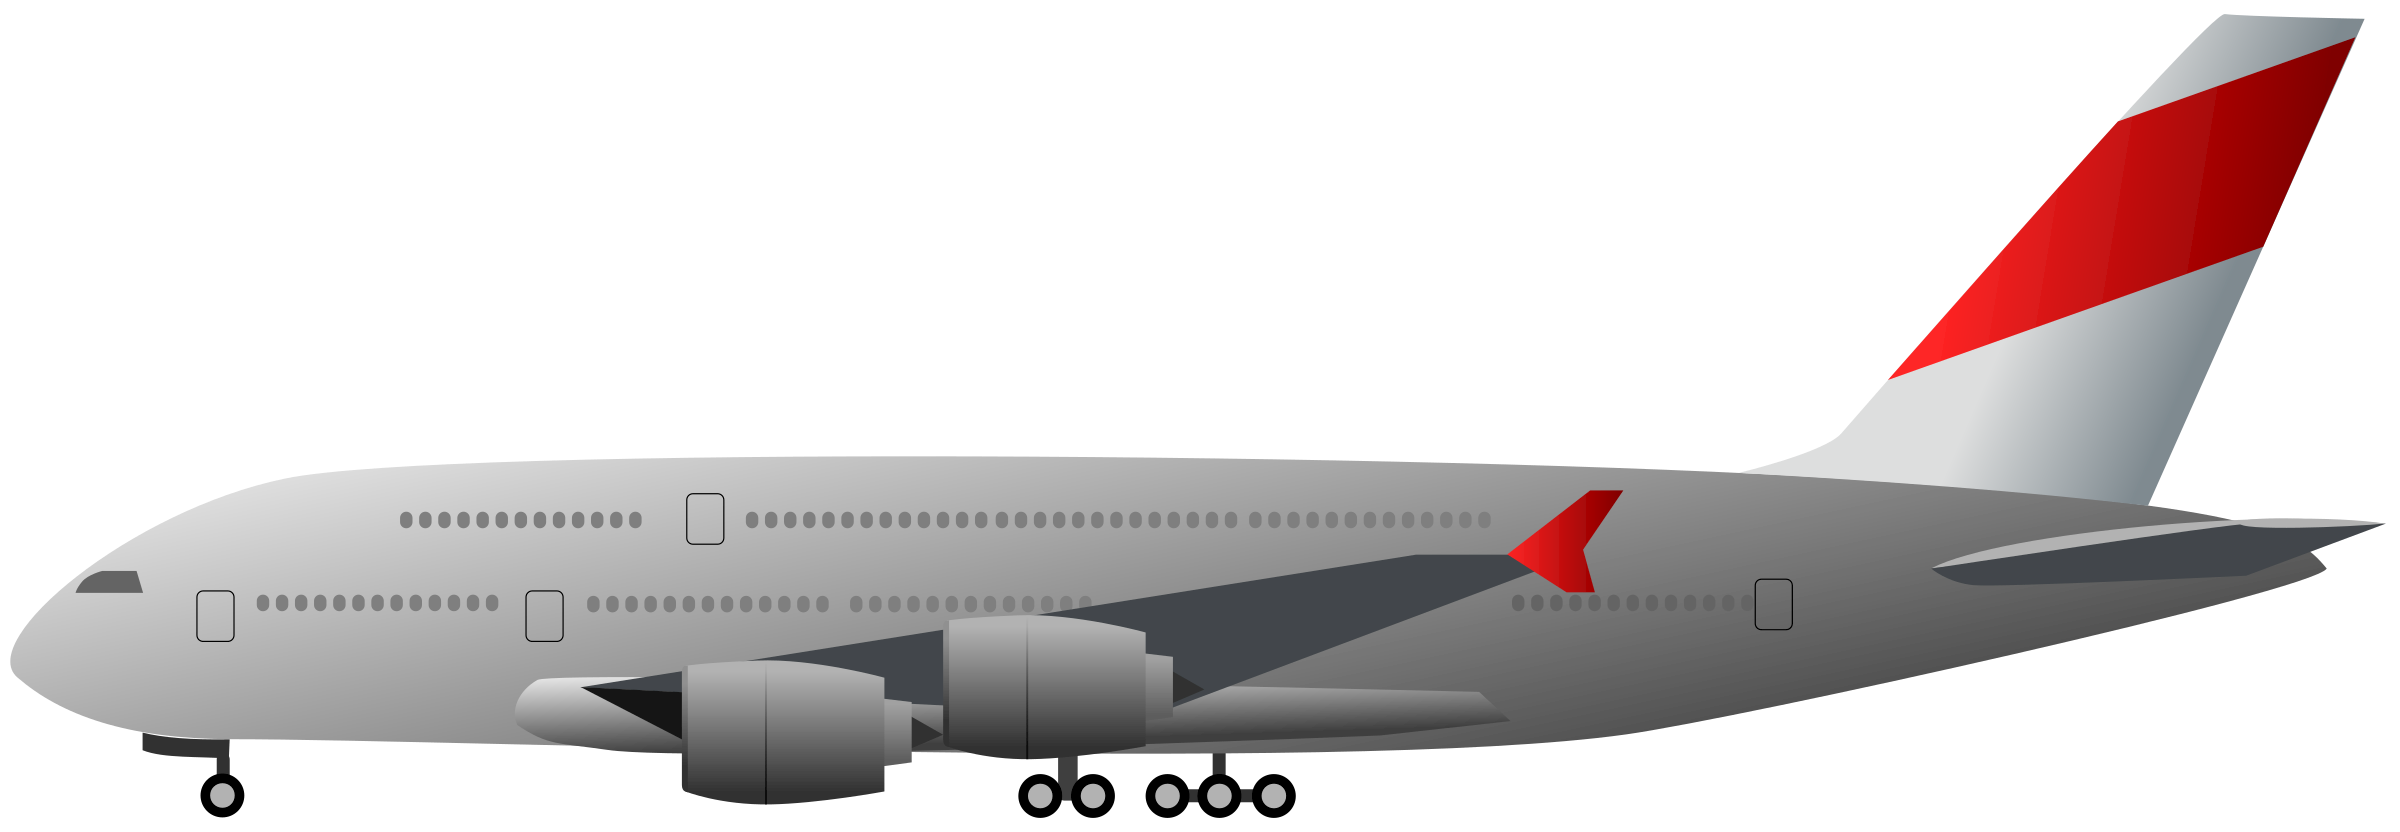 Airliner. Flying clipart a380 airbus